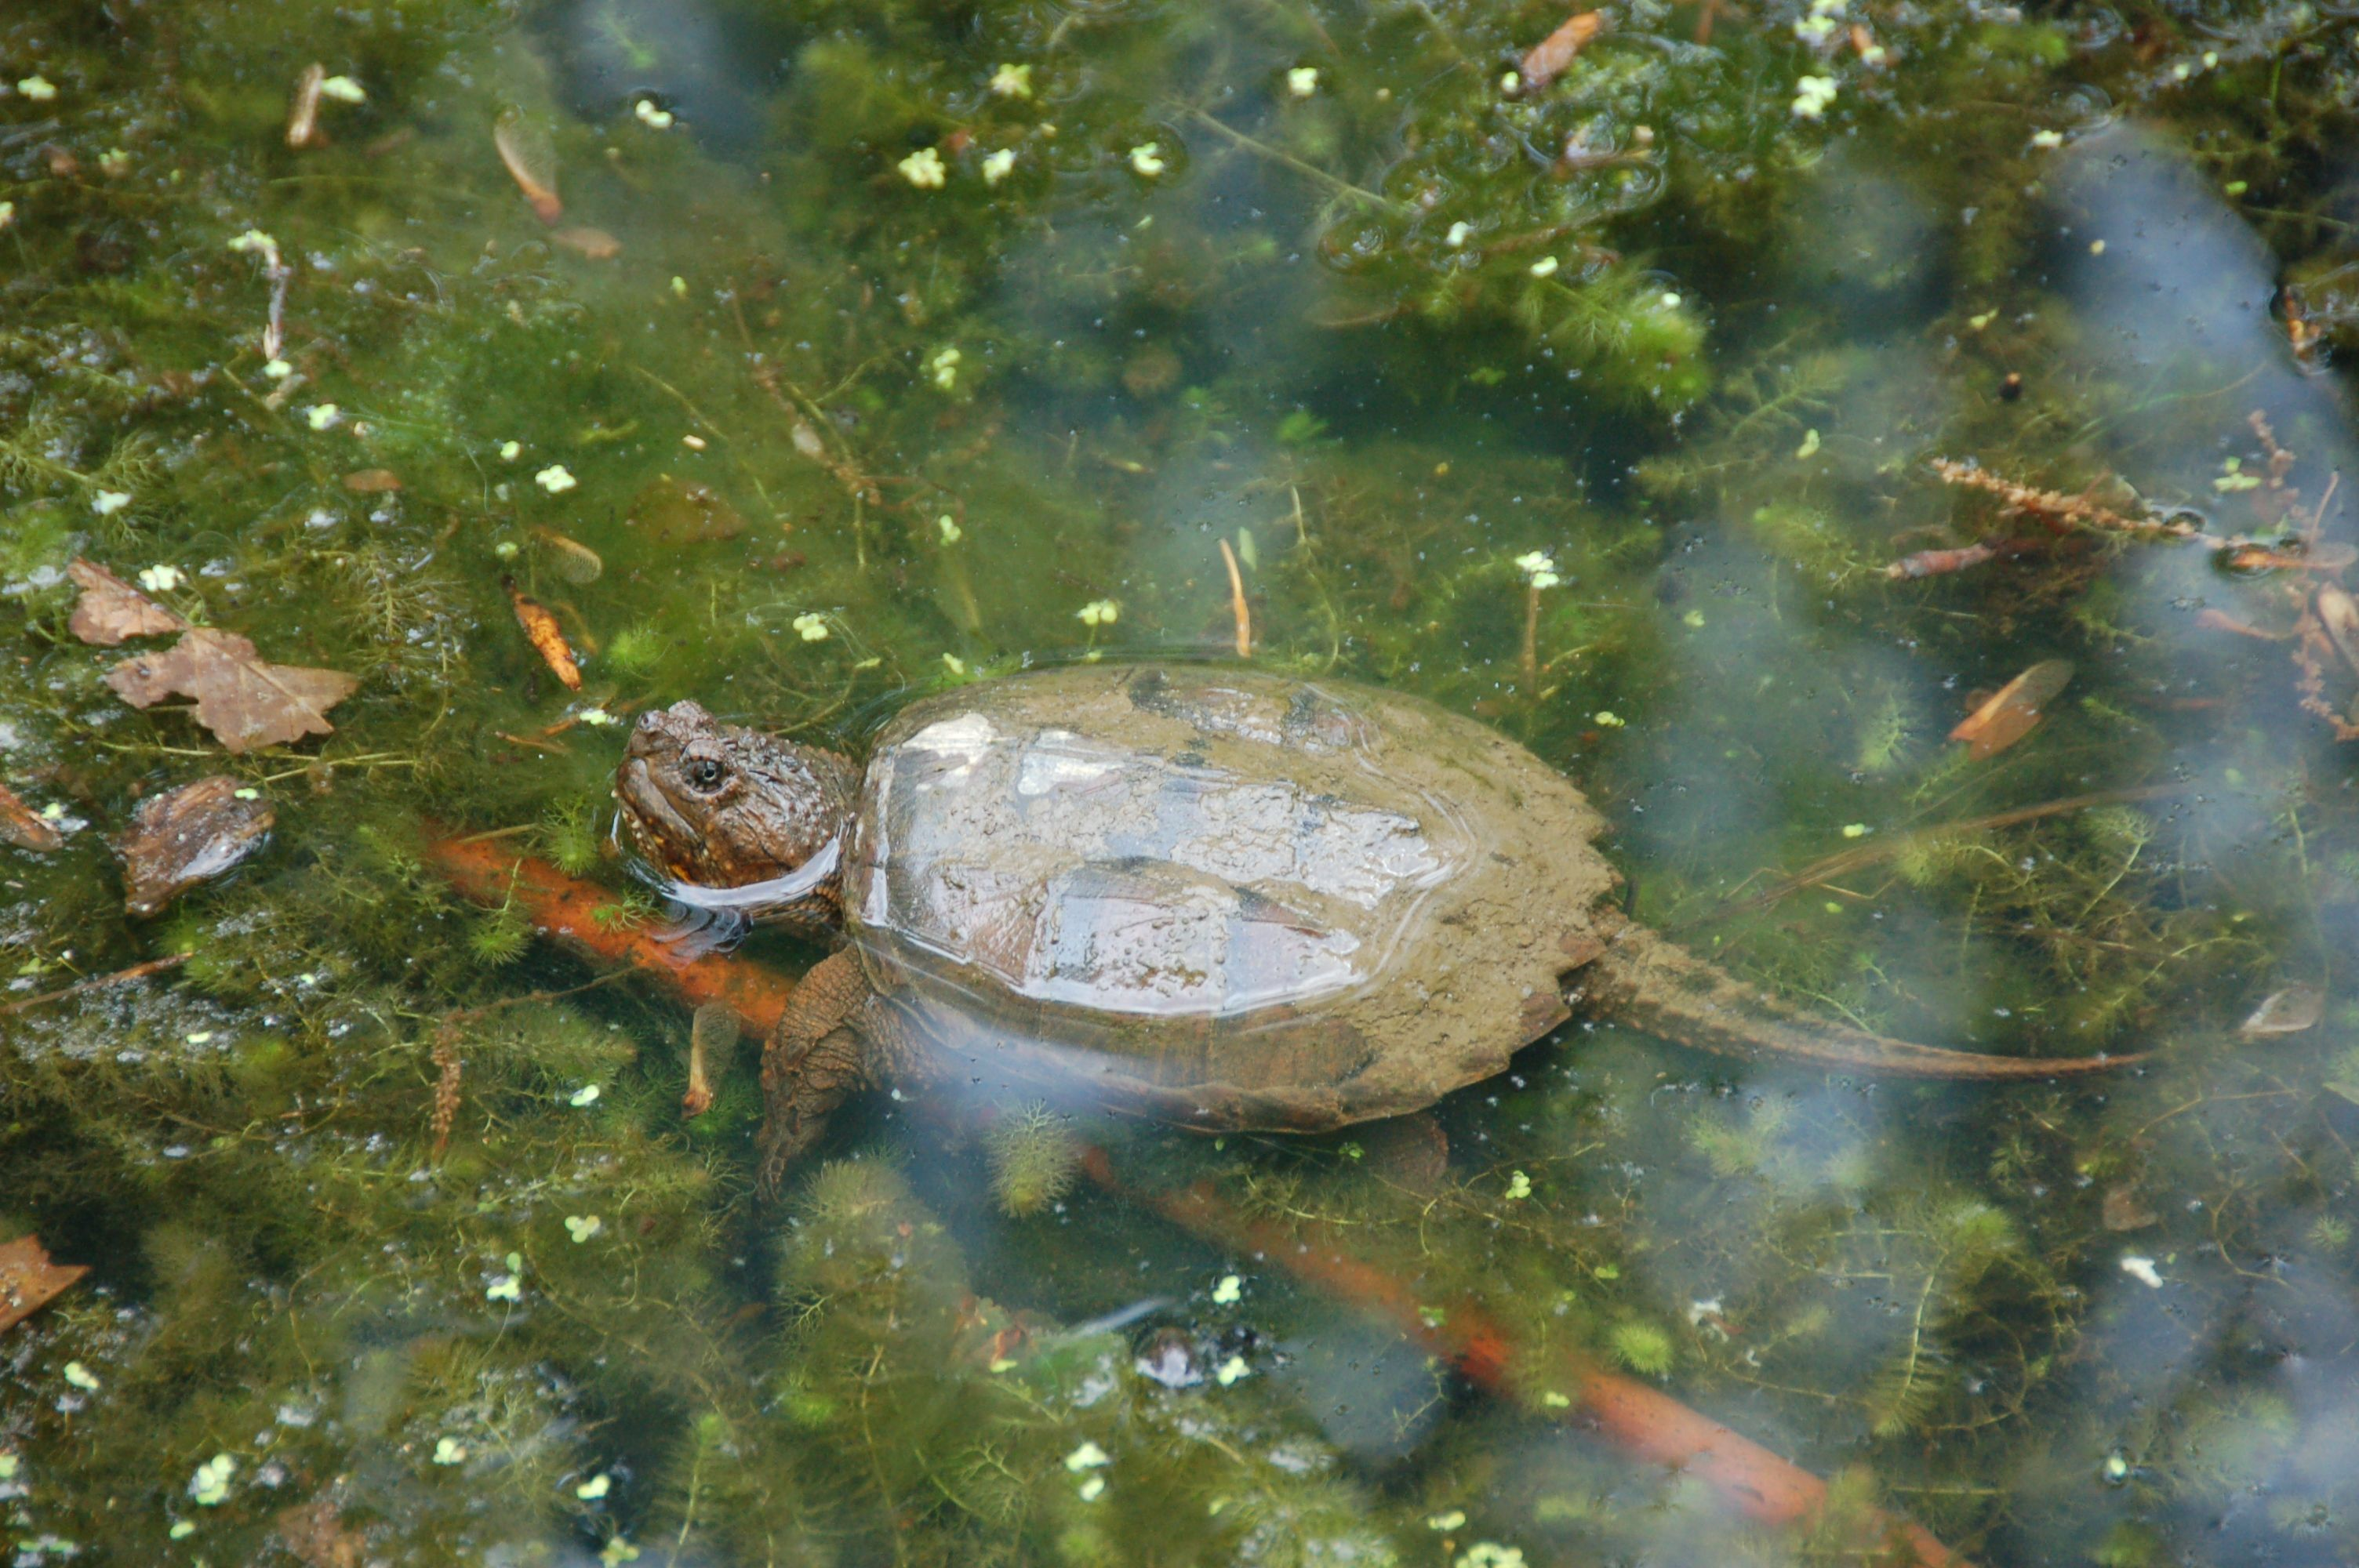 Brookside Gardens young snapping turtle by littlereview